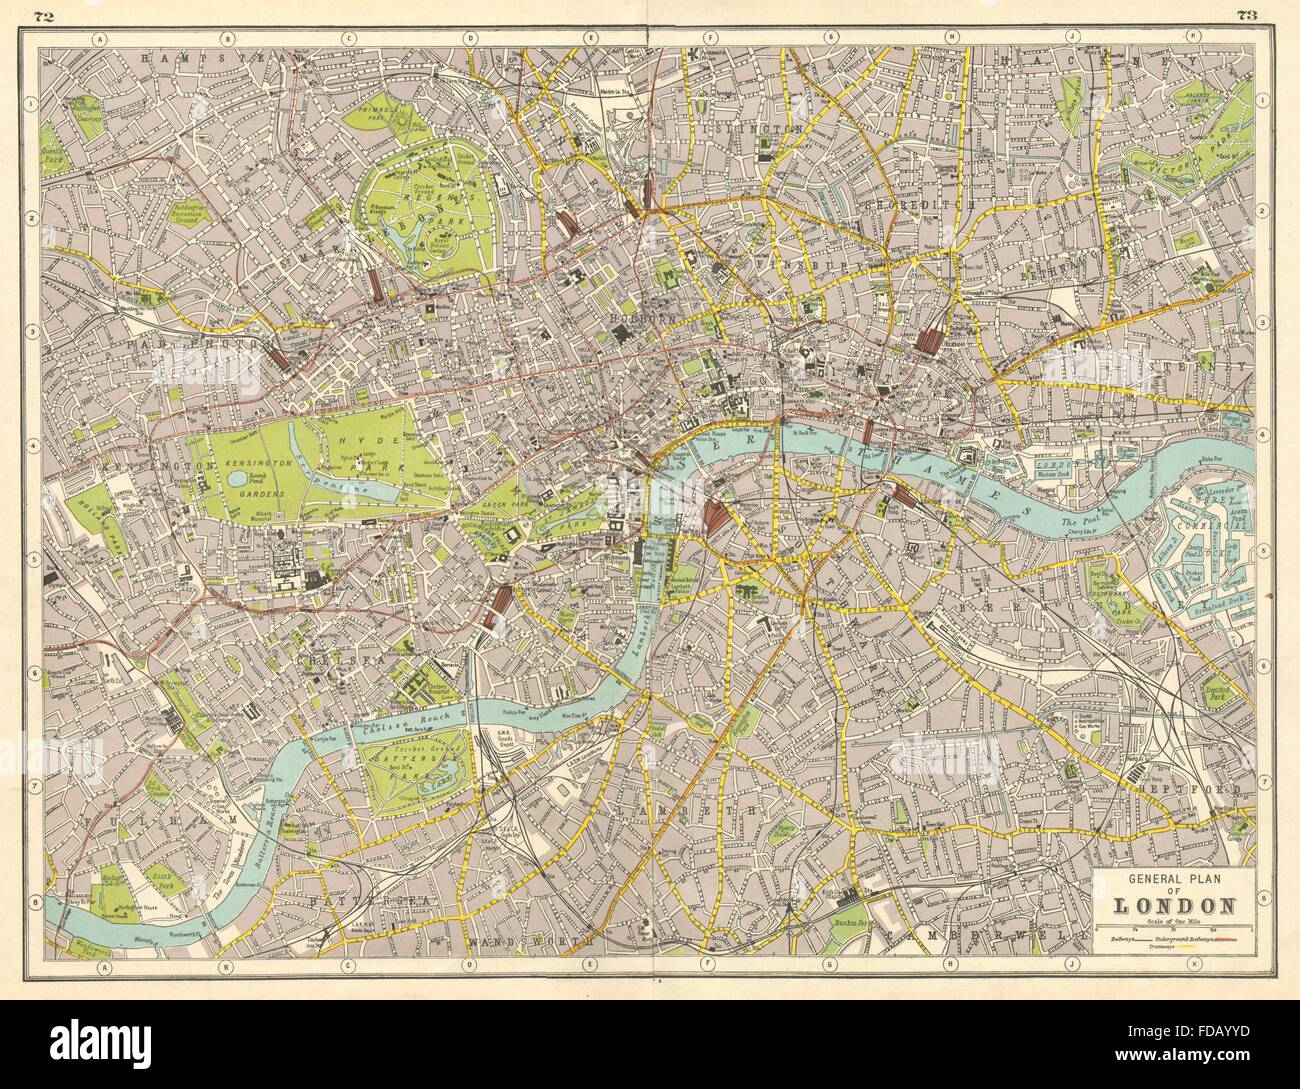 london central london plan harmsworth 1920 vintage map stock image